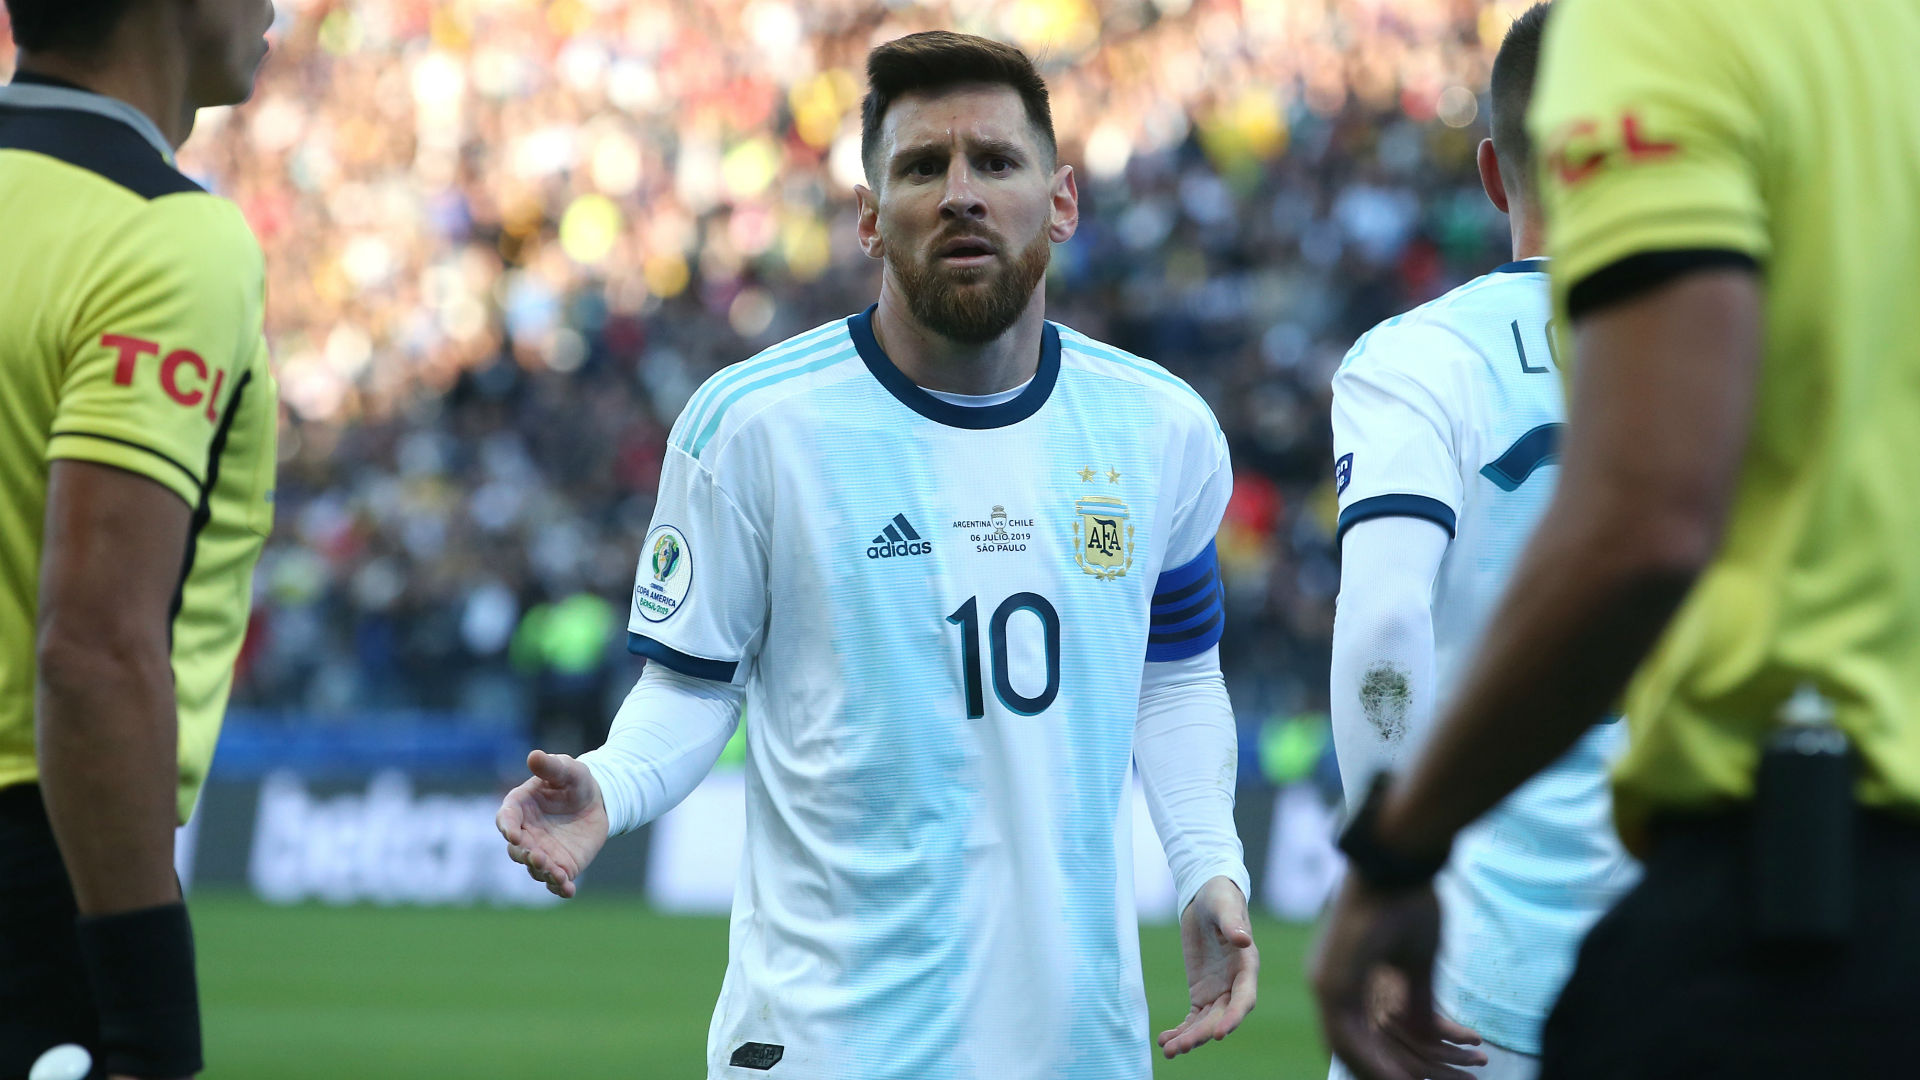 Lionel Messi straight back into Argentina line-up against Brazil after ban